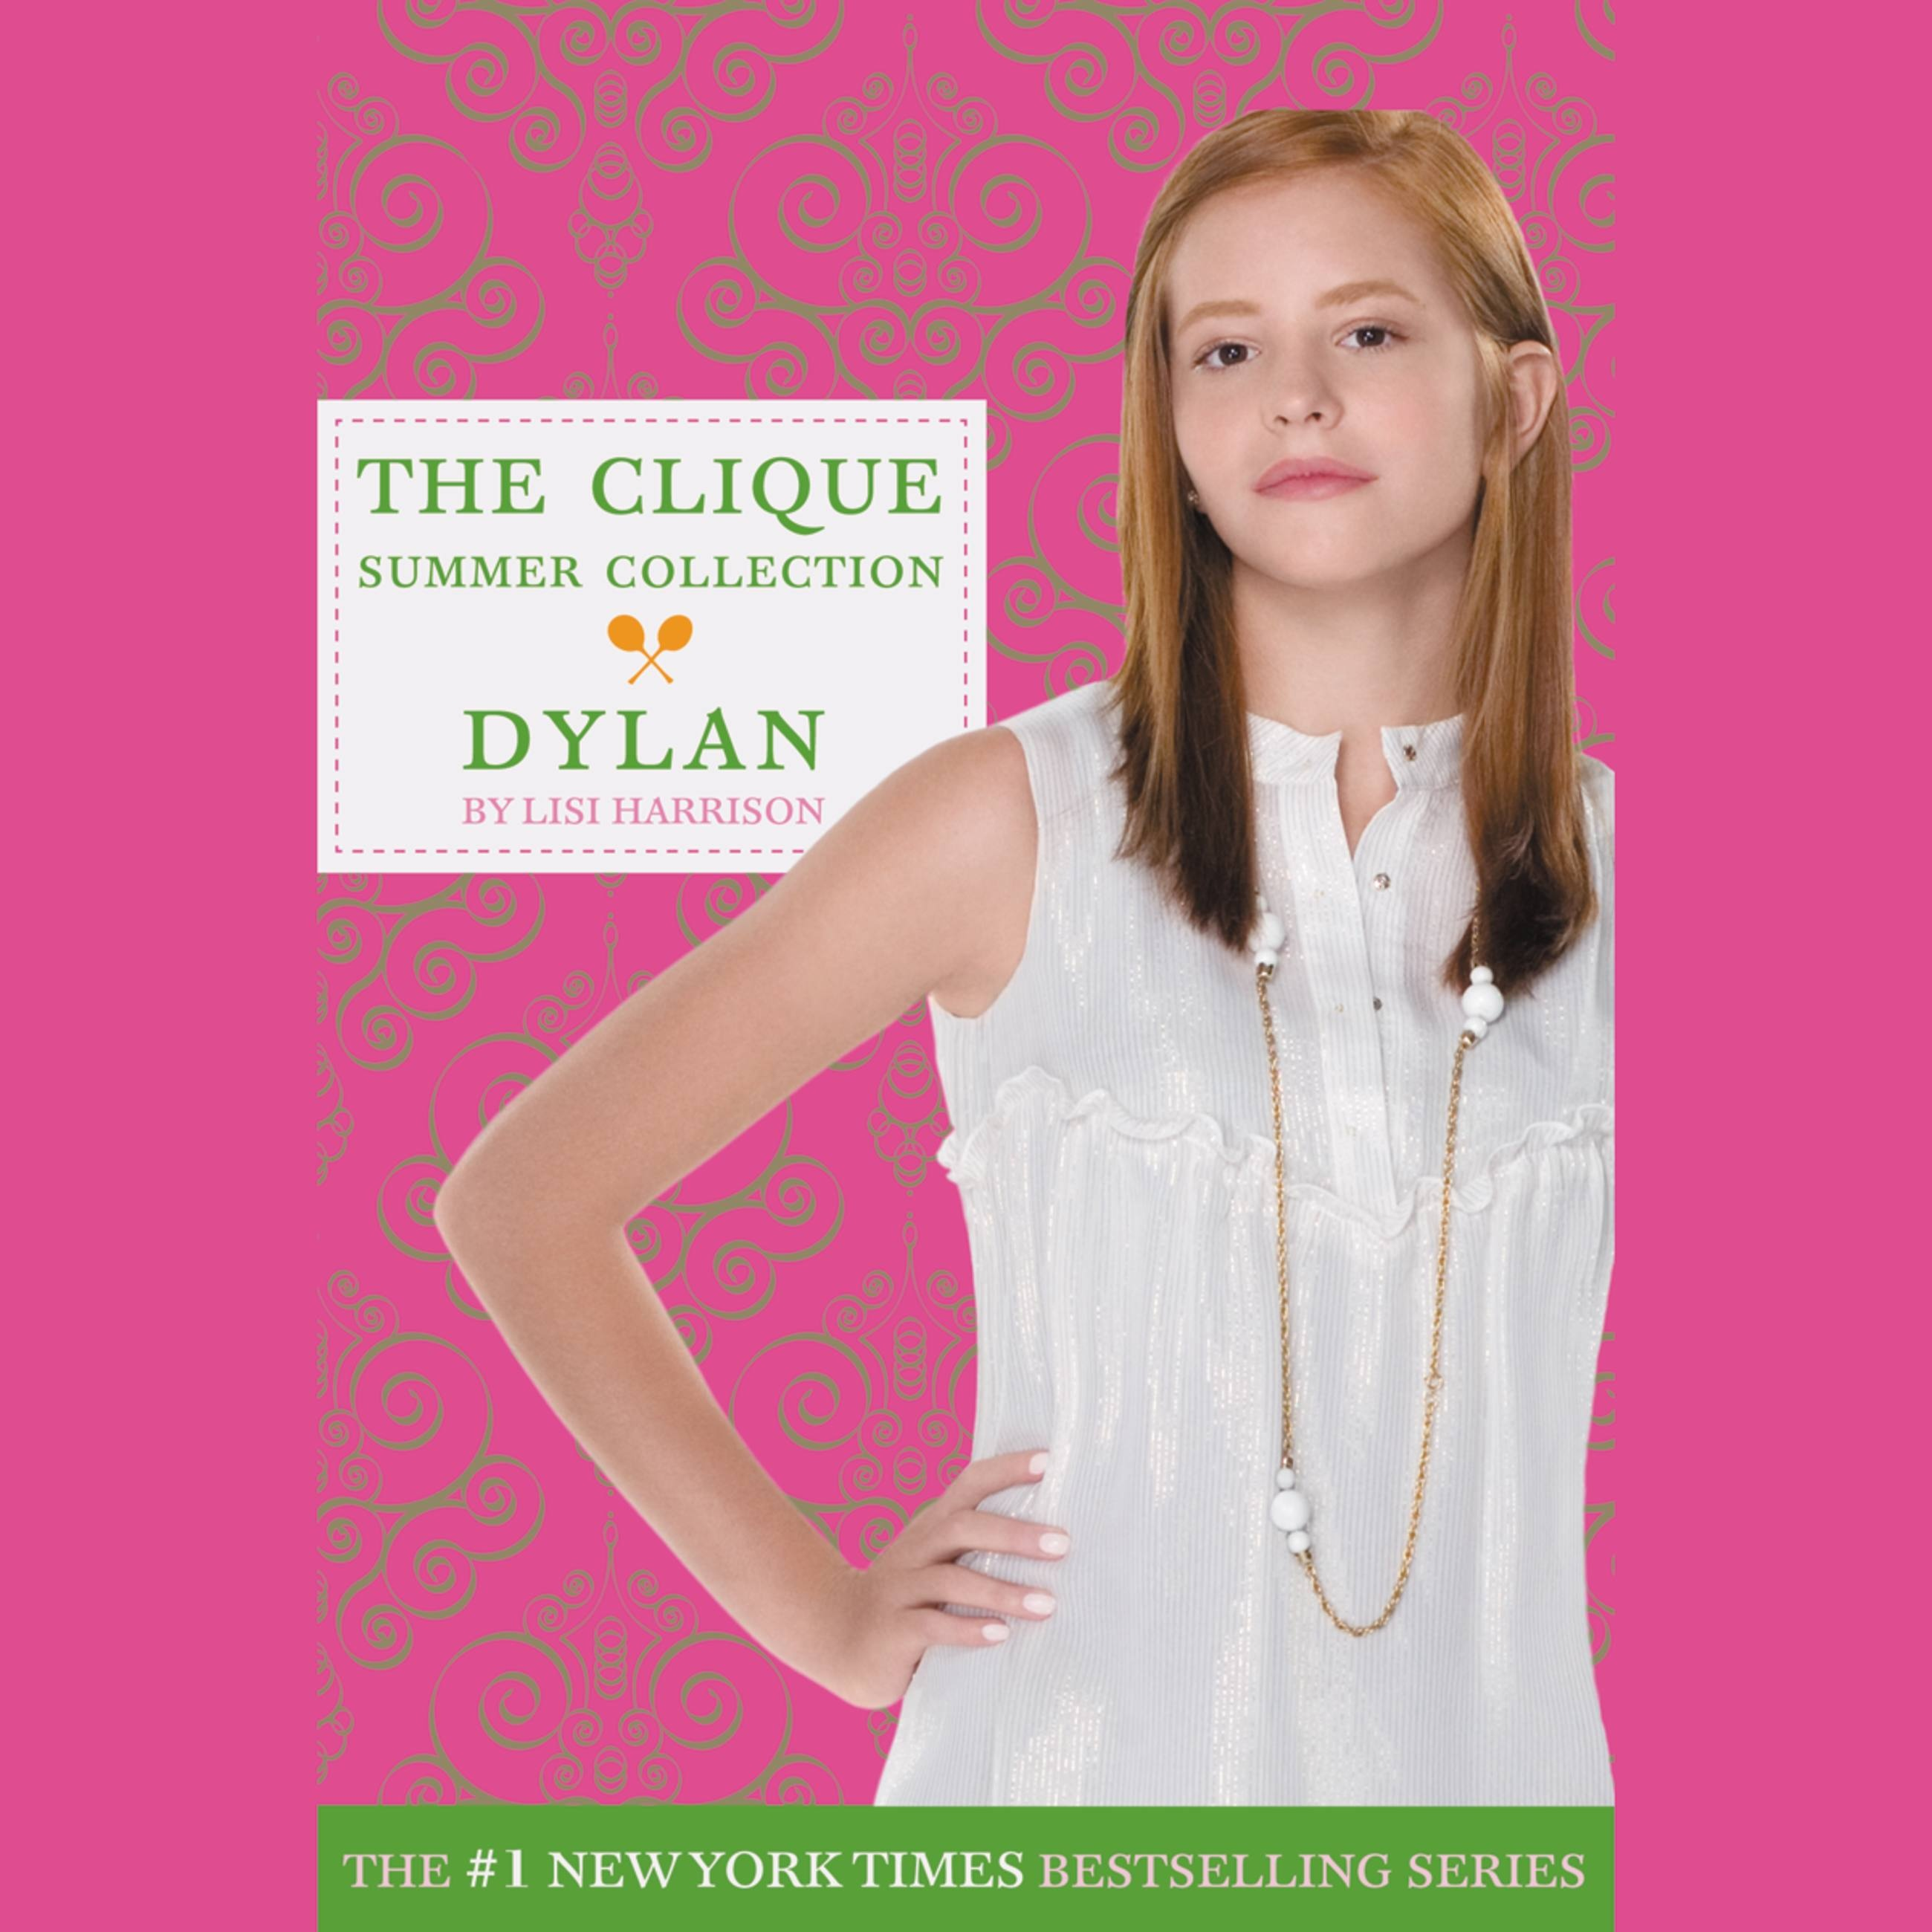 The Clique Summer Collection #2: Dylan